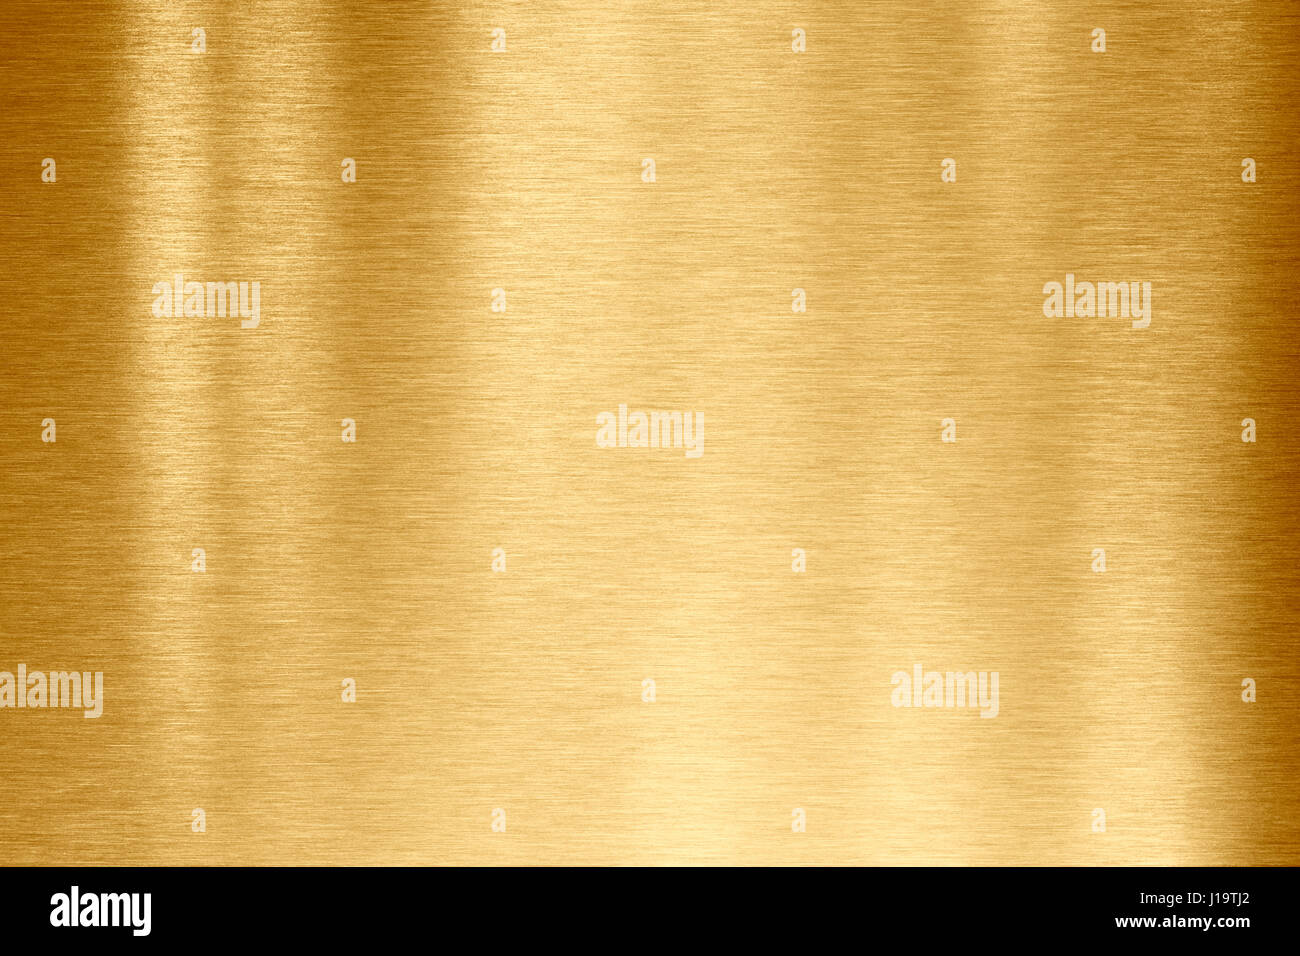 gold metal texture - Stock Image